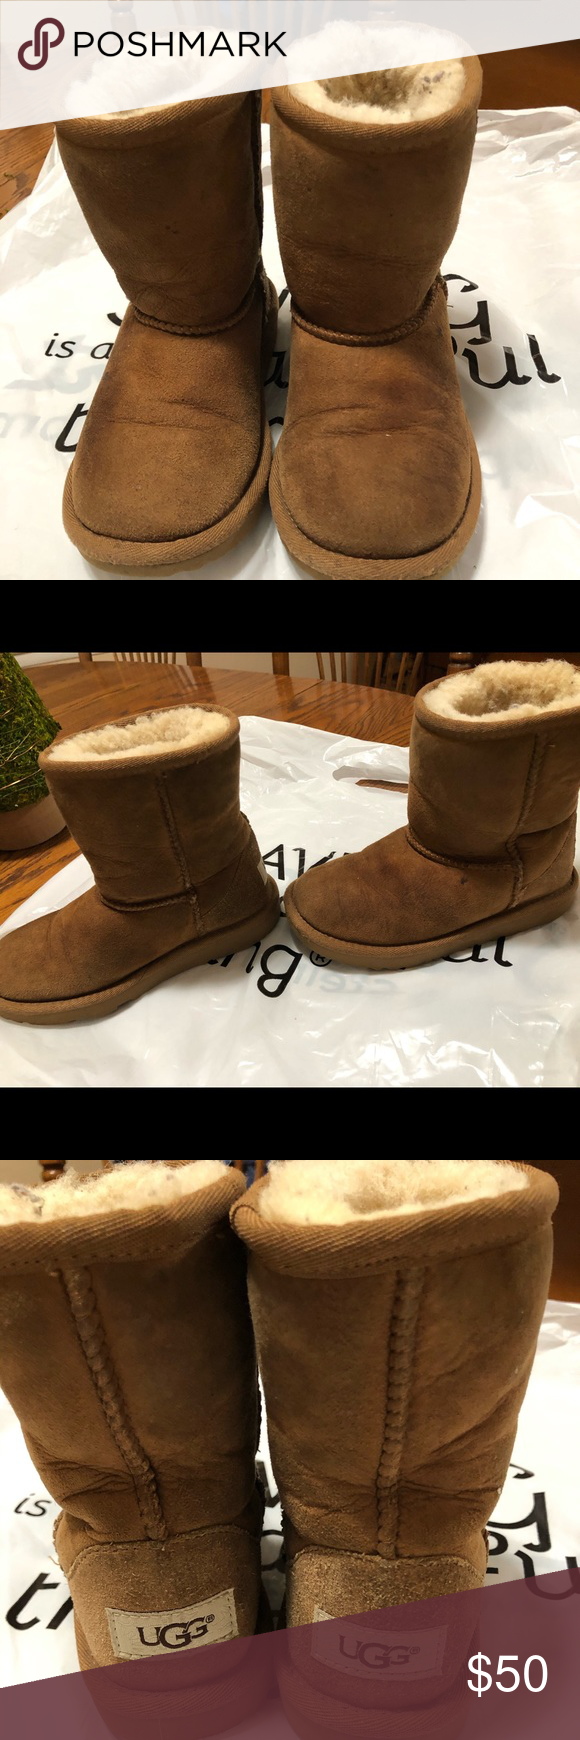 Kids boots size 12 | Kids boots, Boots